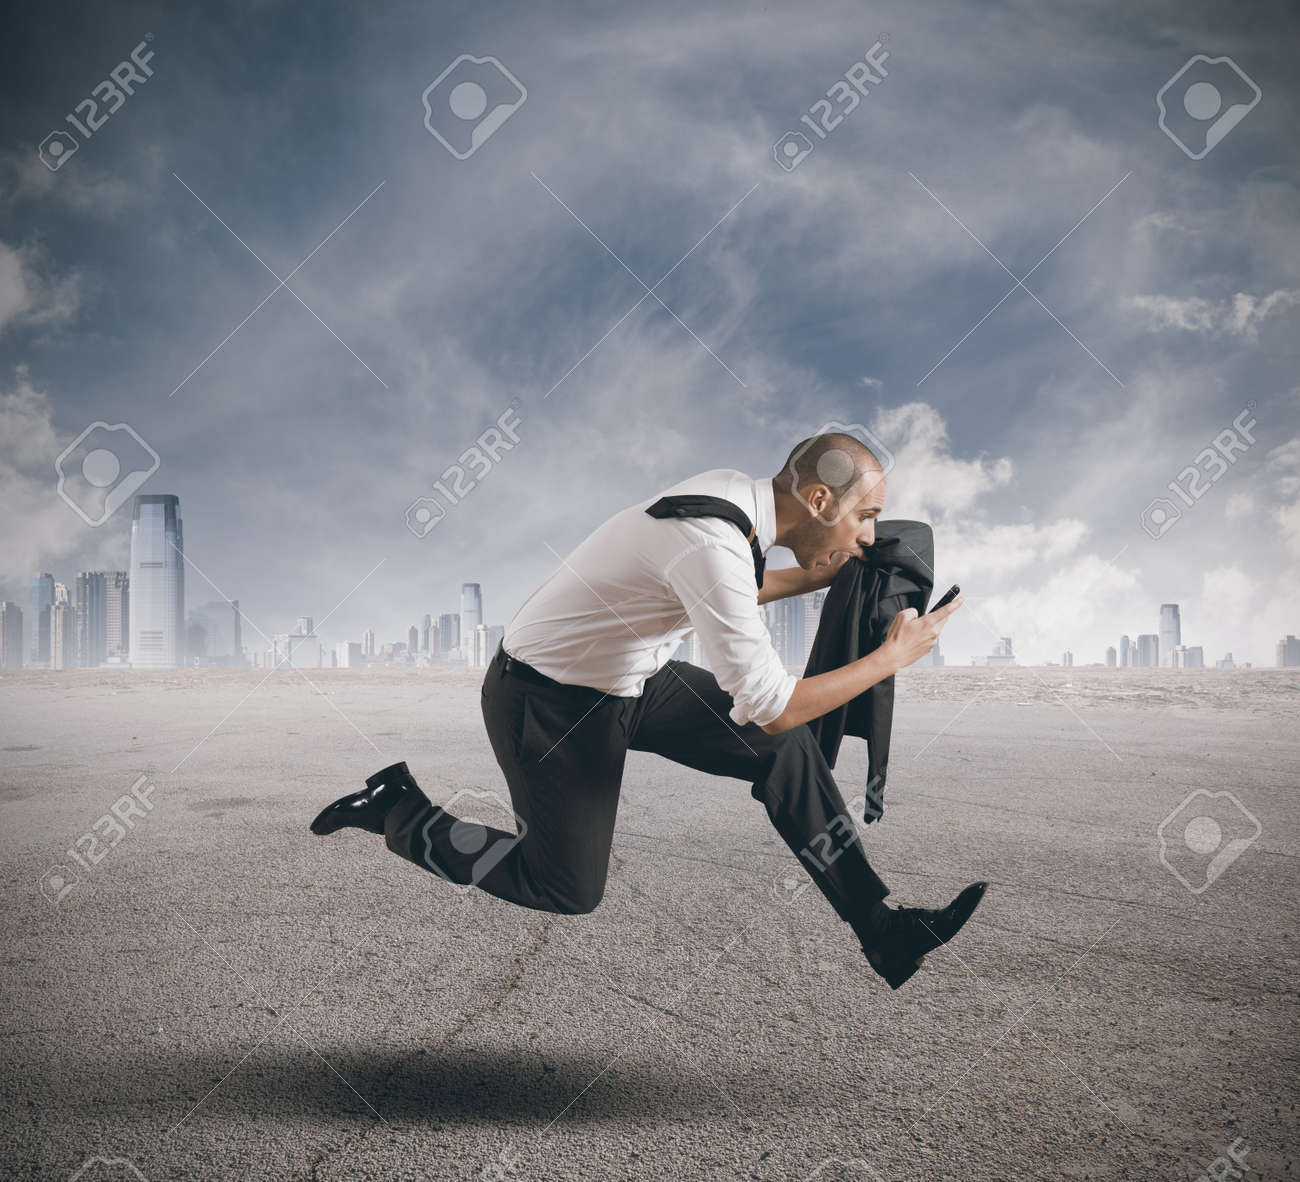 Businessman running with mobile phone in hand Stock Photo - 17244932